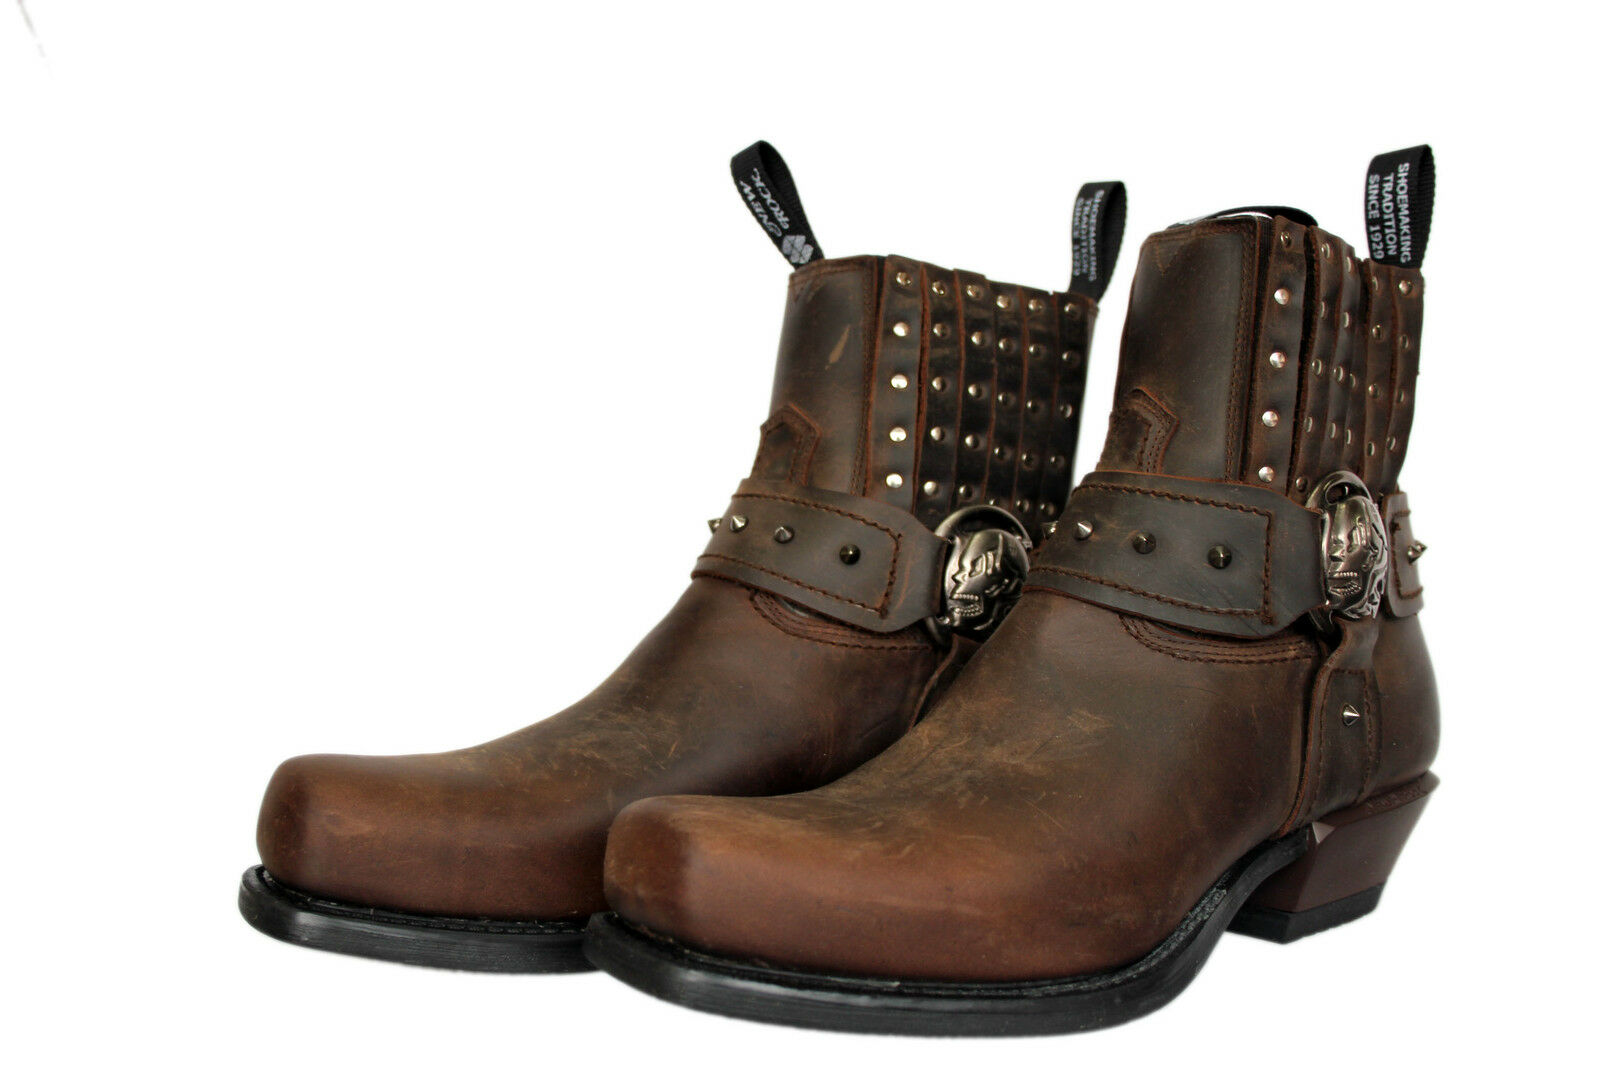 Newrock New Rock M.7959 Brown Scarpe In Pelle Tinta Unita West Marrone Tacco Caviglia Scarpe Brown Cowboy f42d42